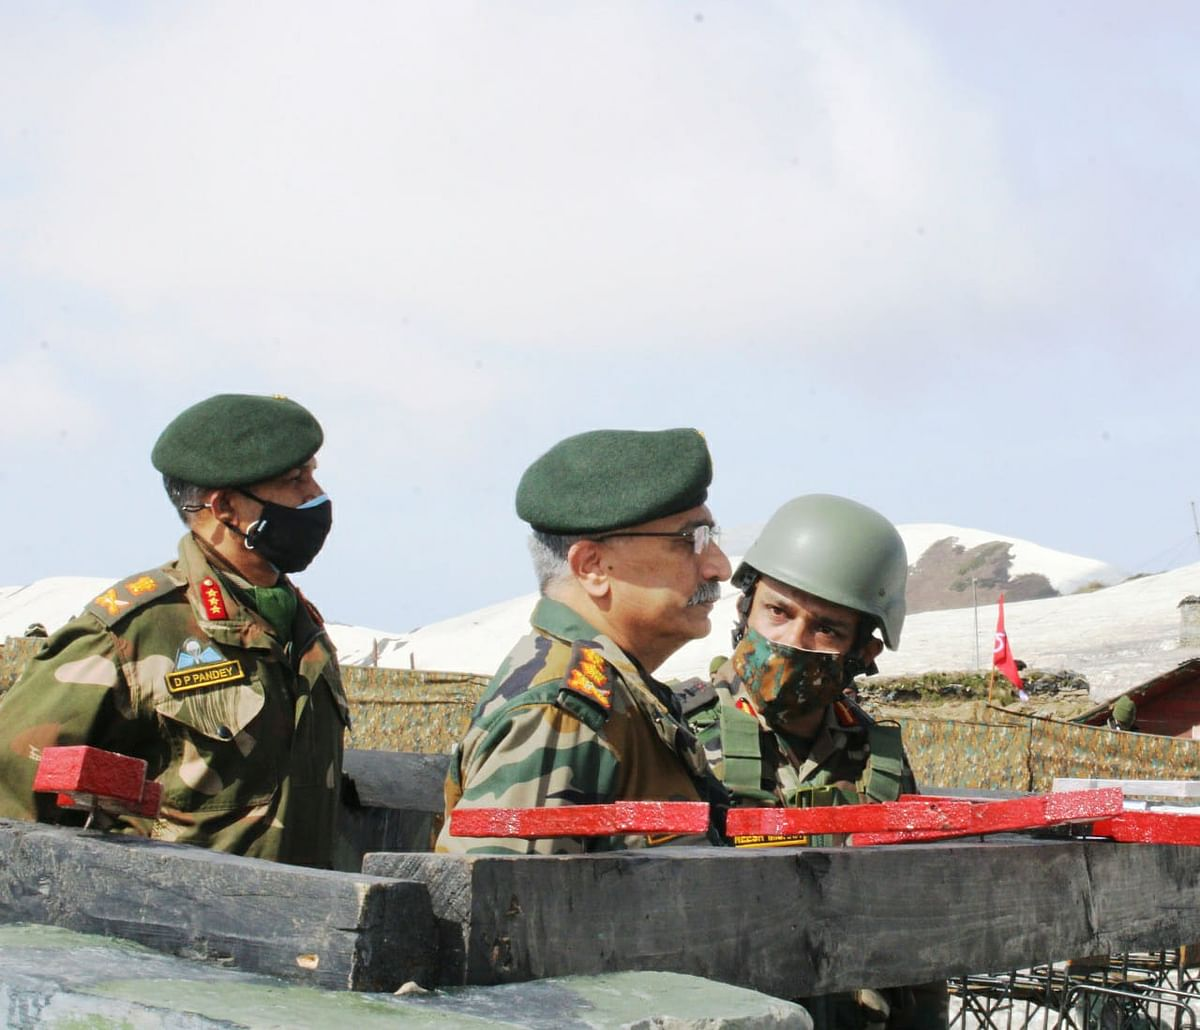 Indian military developing capabilities to deal with drone threats: Army chief